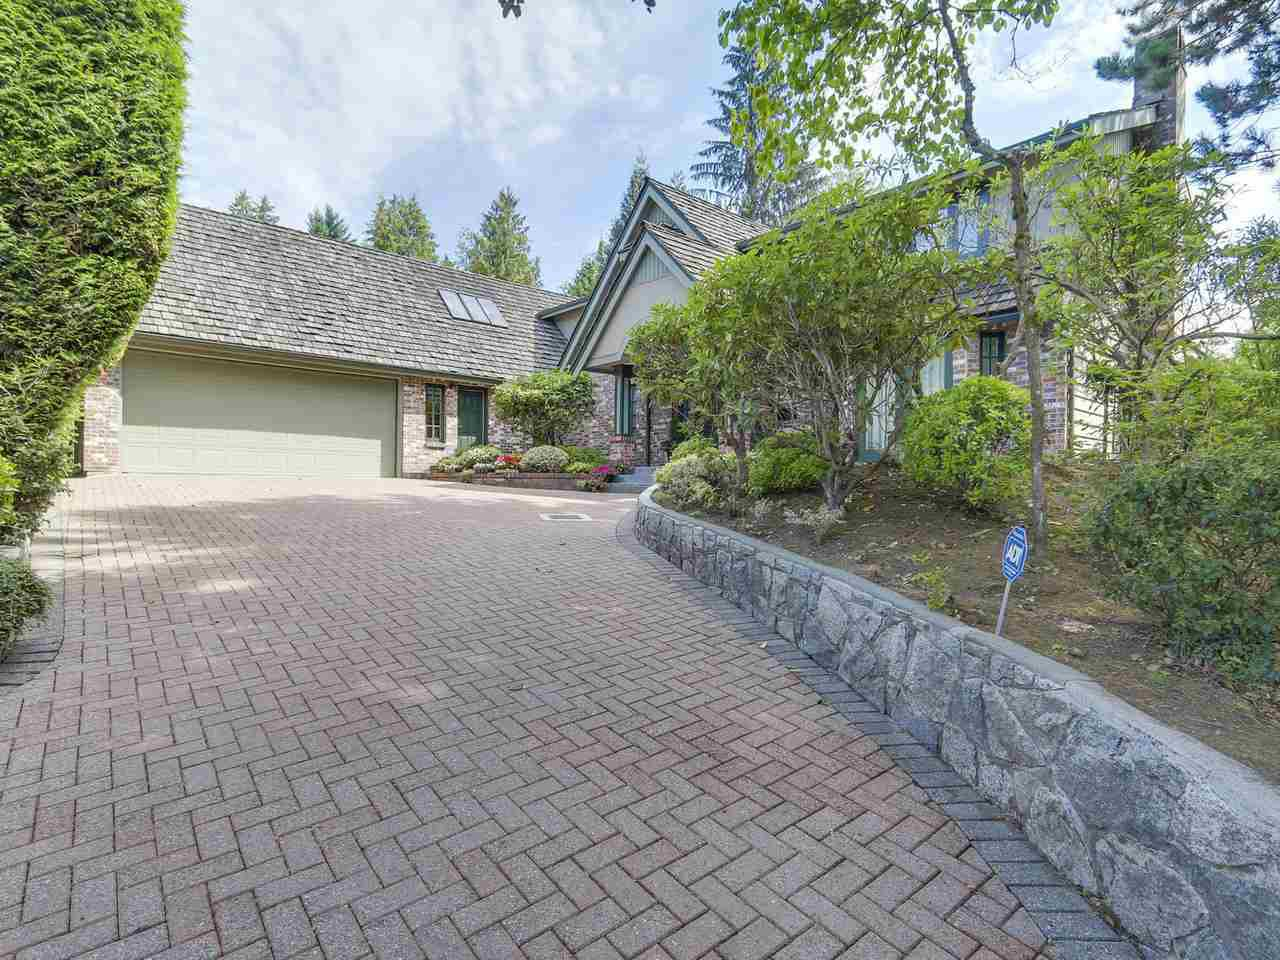 Main Photo: 990 SHERWOOD Lane in West Vancouver: Ambleside House for sale : MLS®# R2412347